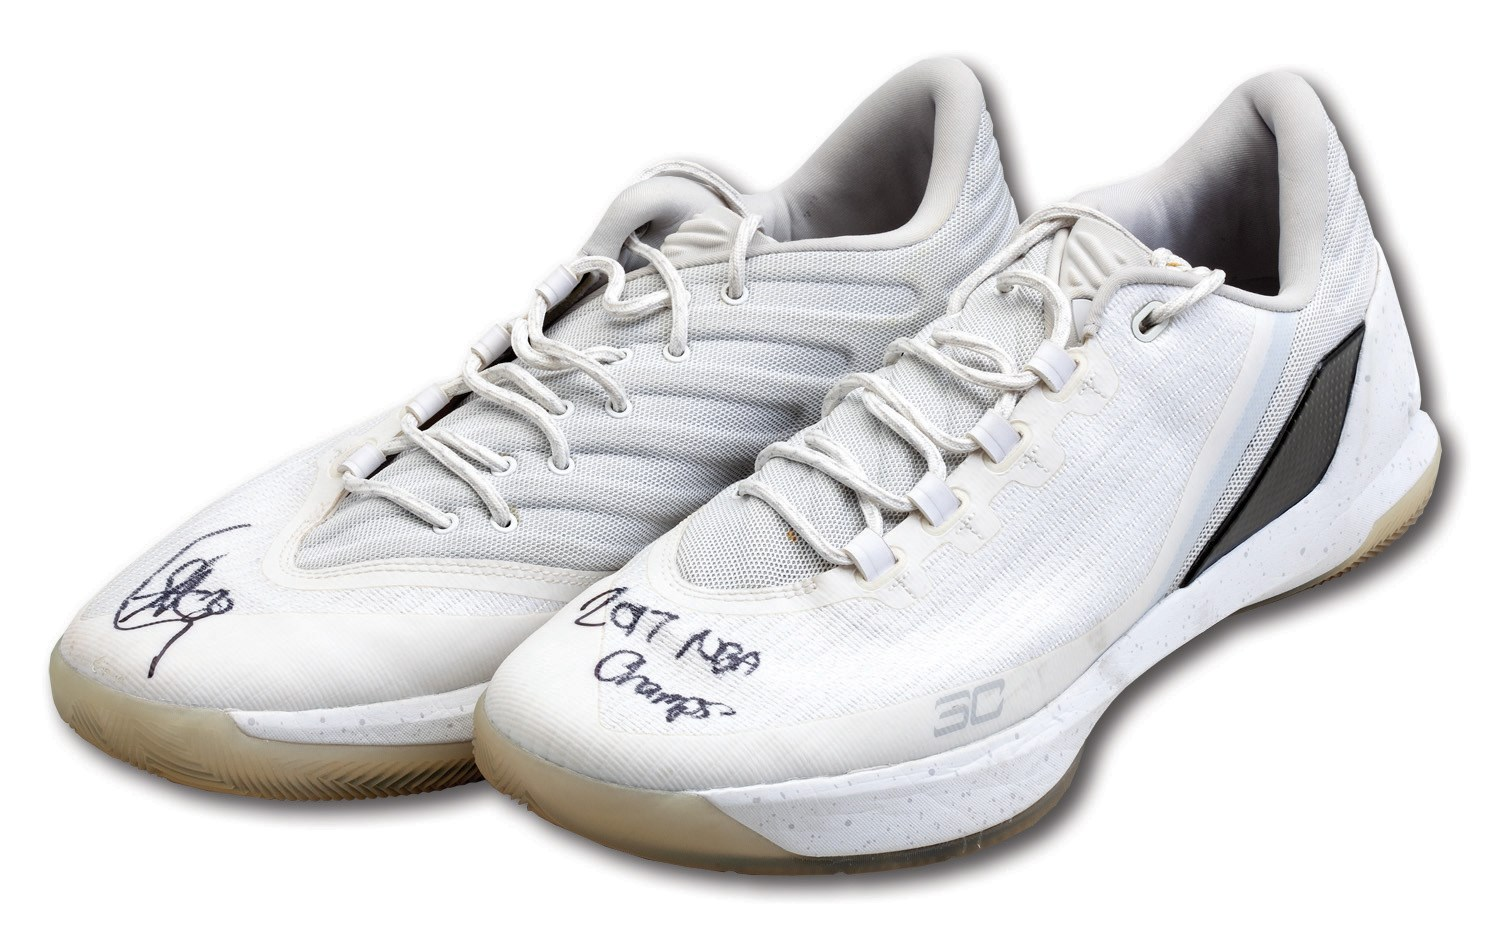 73bf0603939 2016-17 STEPHEN CURRY SIGNED & INSCRIBED UNDER ARMOUR CURRY 3 SHOES  PHOTO-MATCHED TO WARRIORS MEDIA DAY AND PRESEASON USE (STEINER, MEIGRAY)